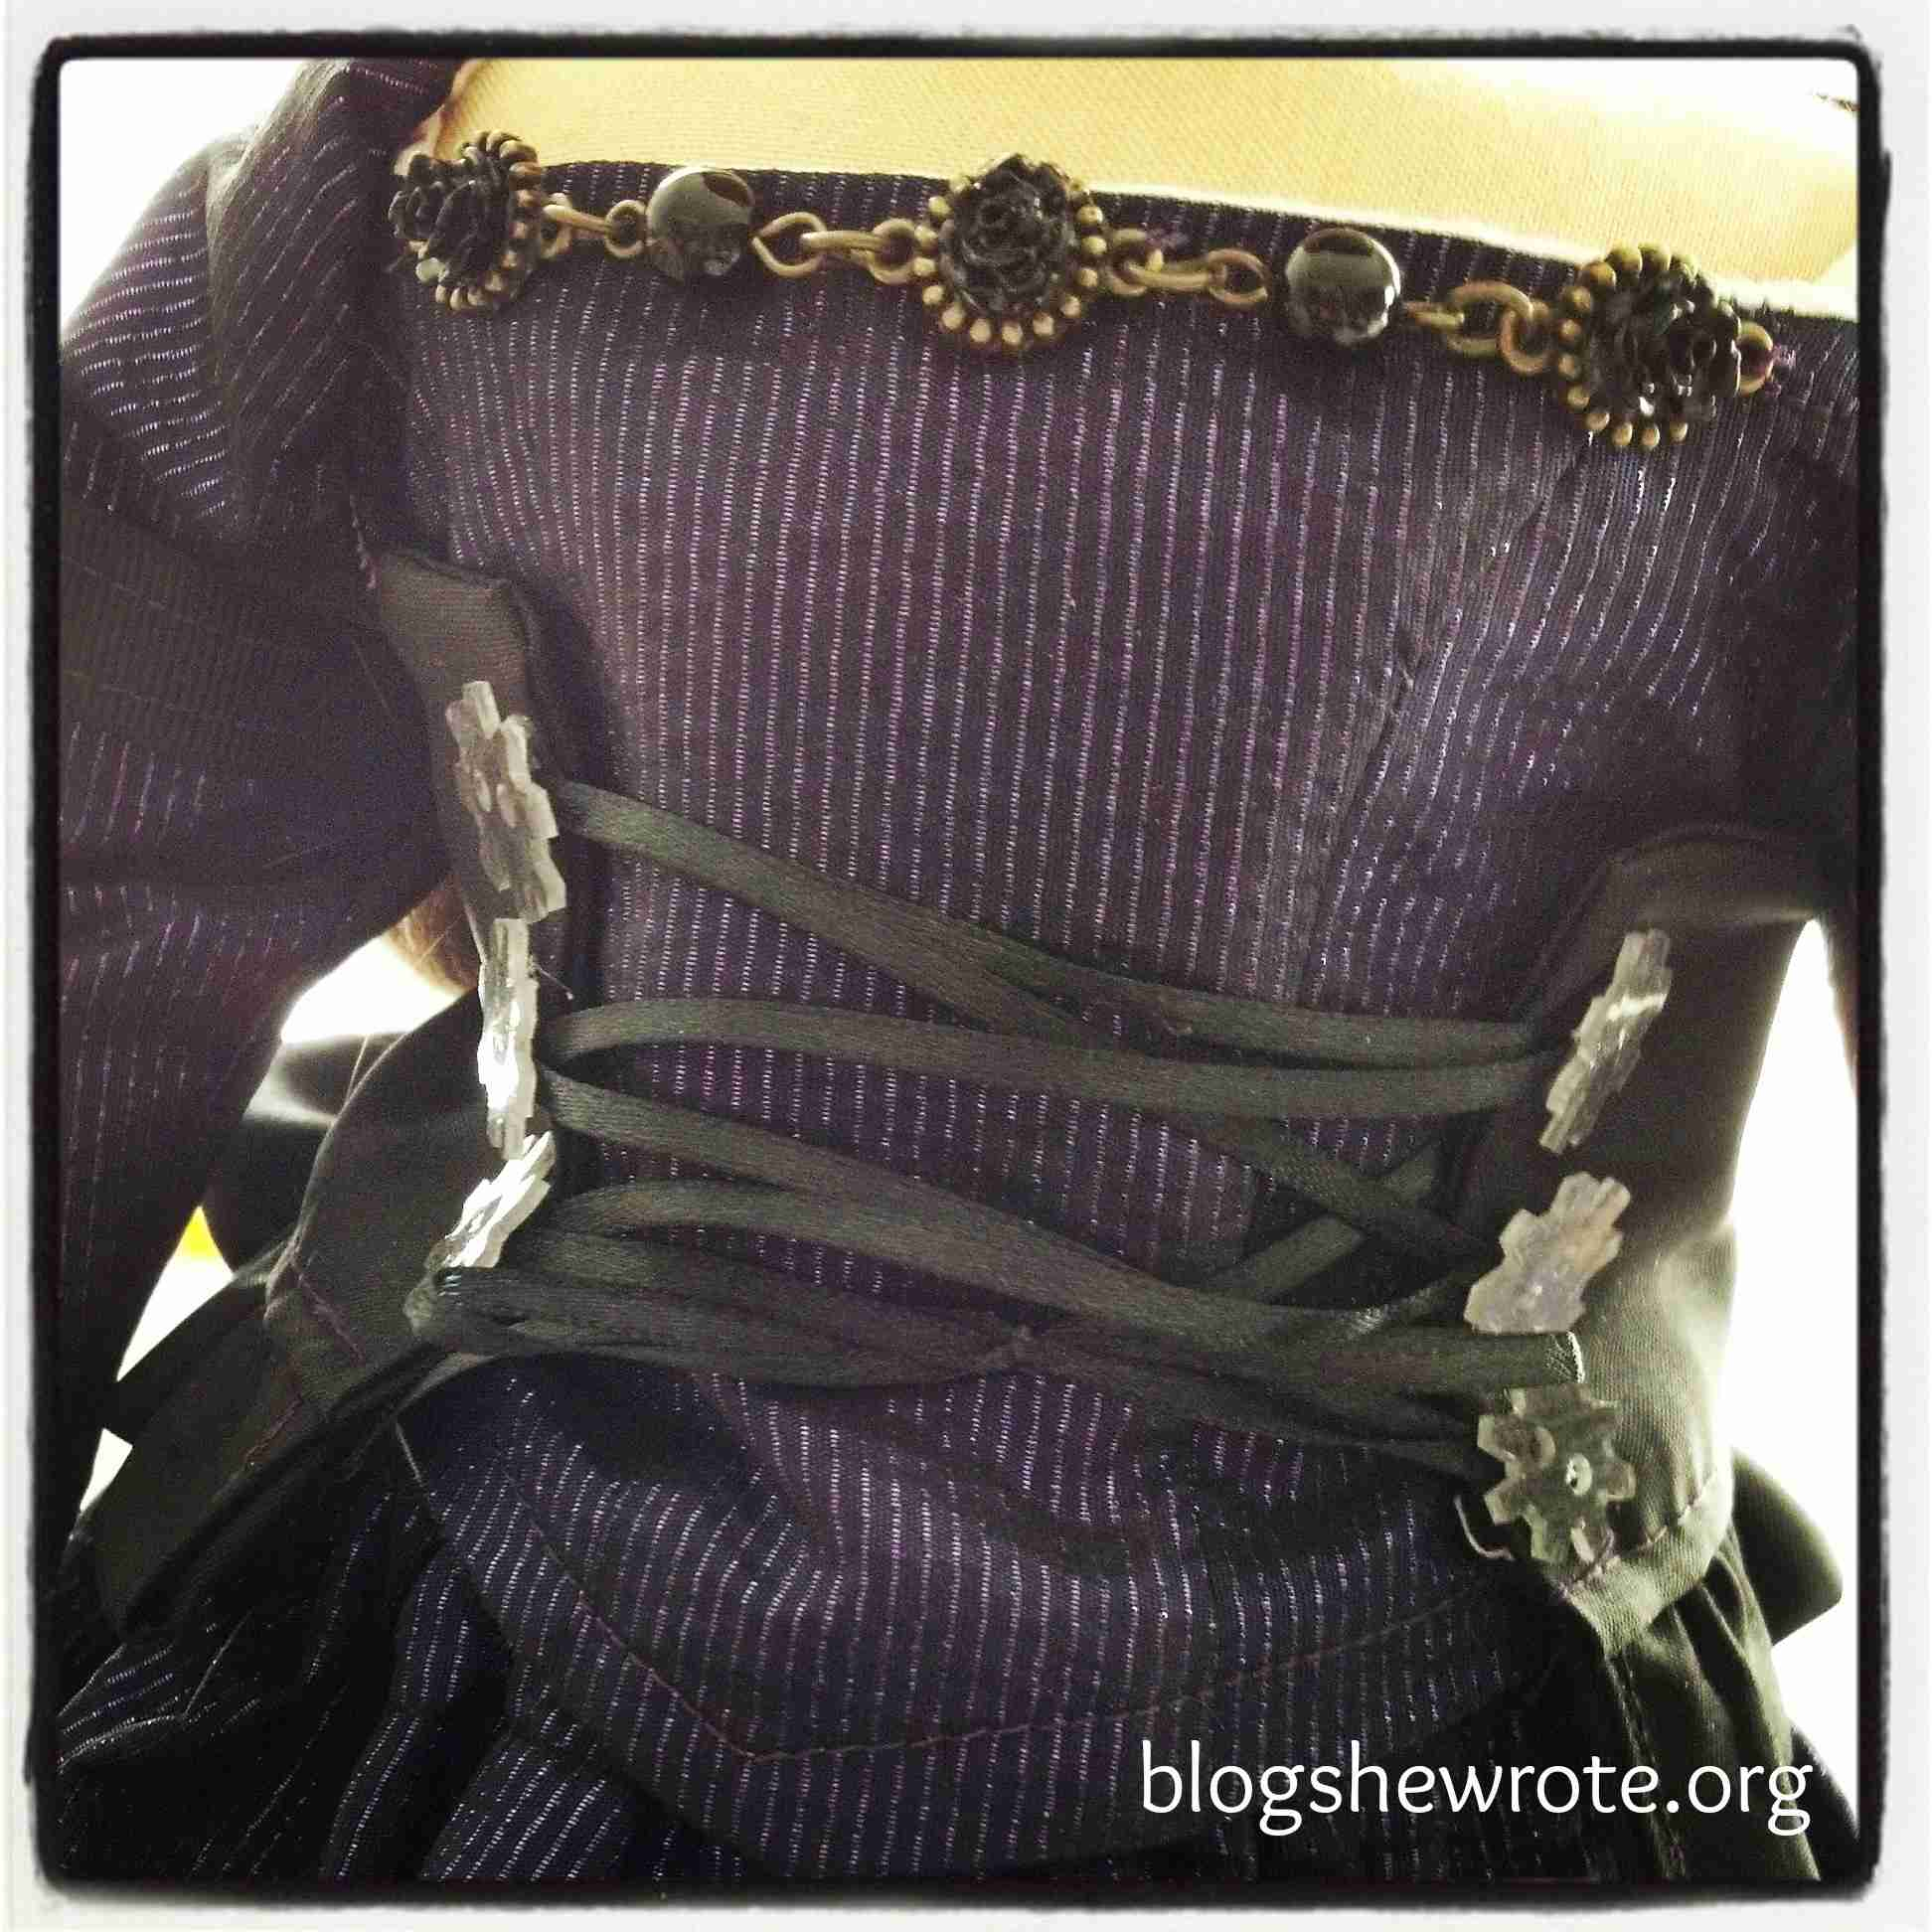 Blog, She Wrote: Steampunk Fashion Design & Drafting